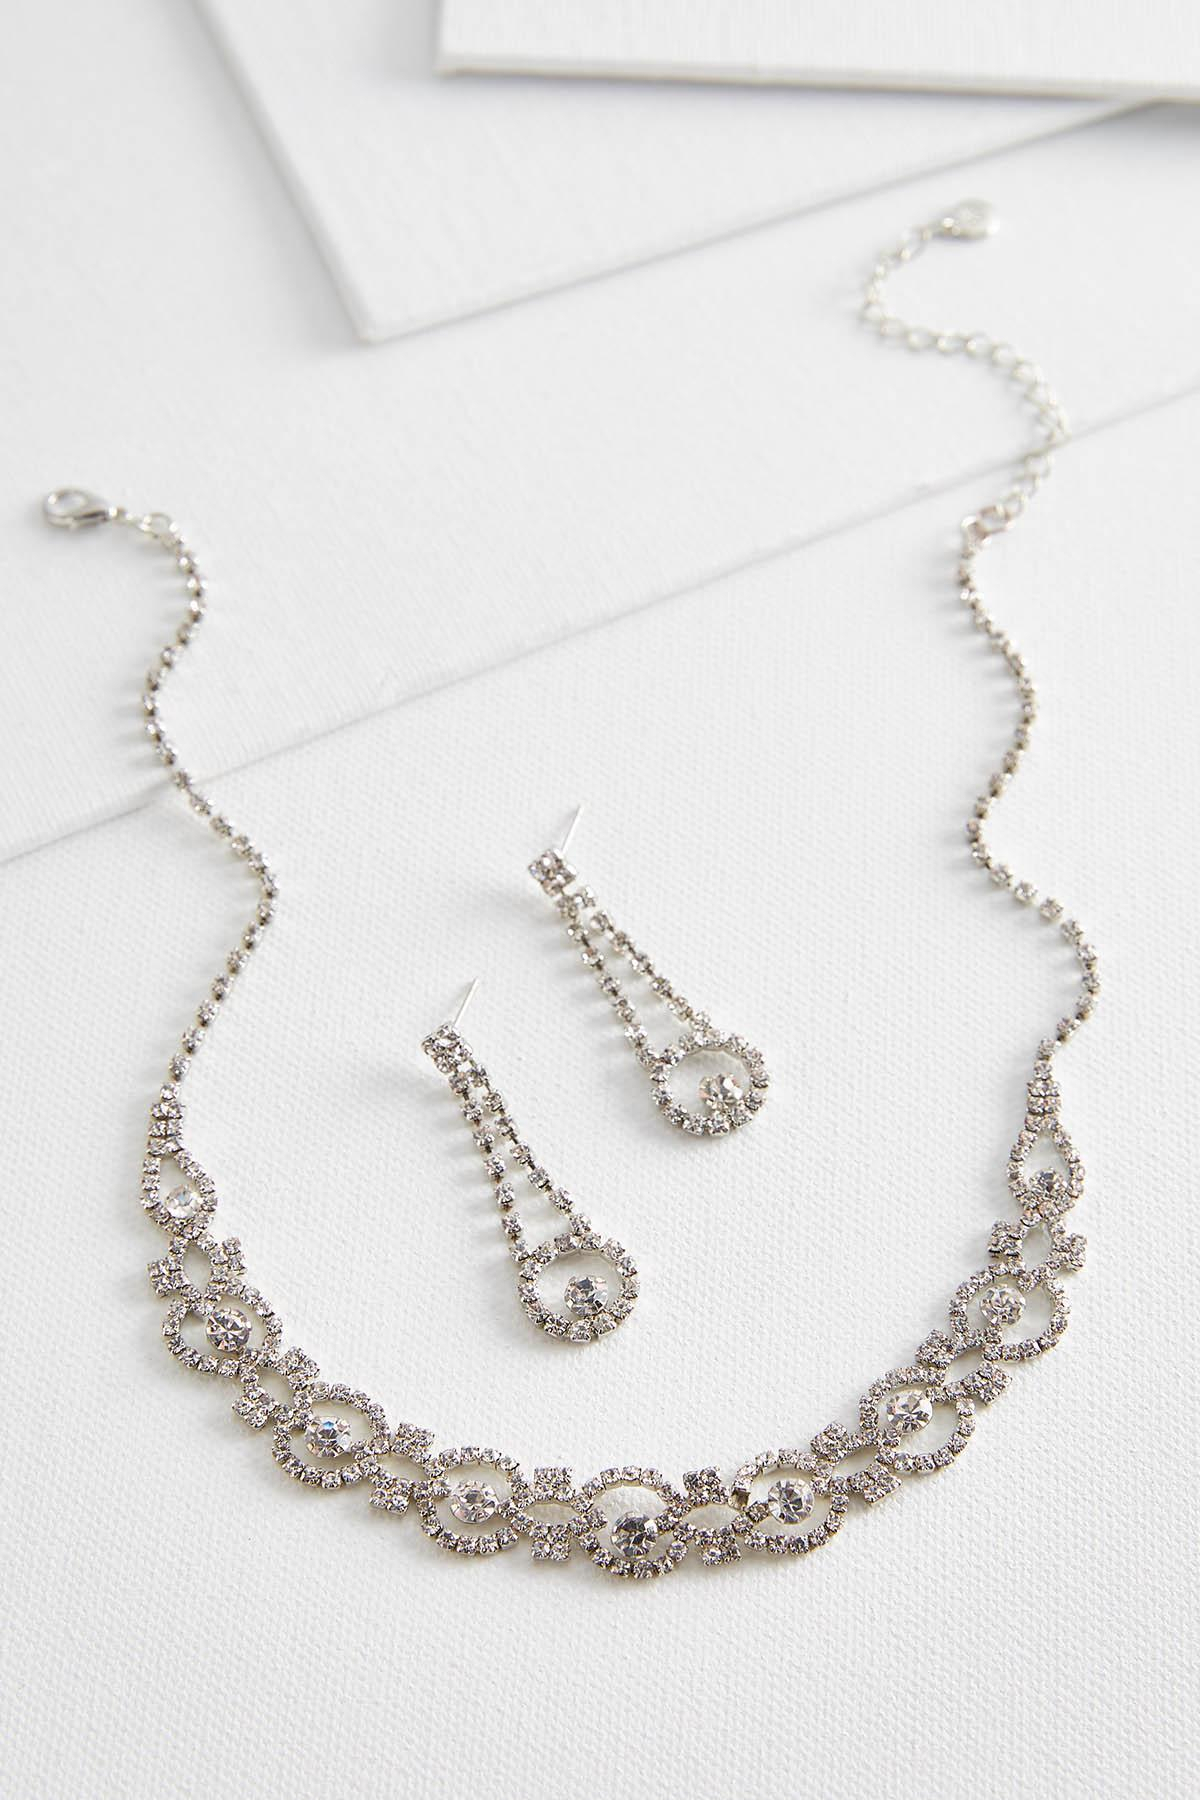 Dainty Stone Necklace And Earring Set For Current Sparkling Stones Pendant Necklaces (Gallery 20 of 25)